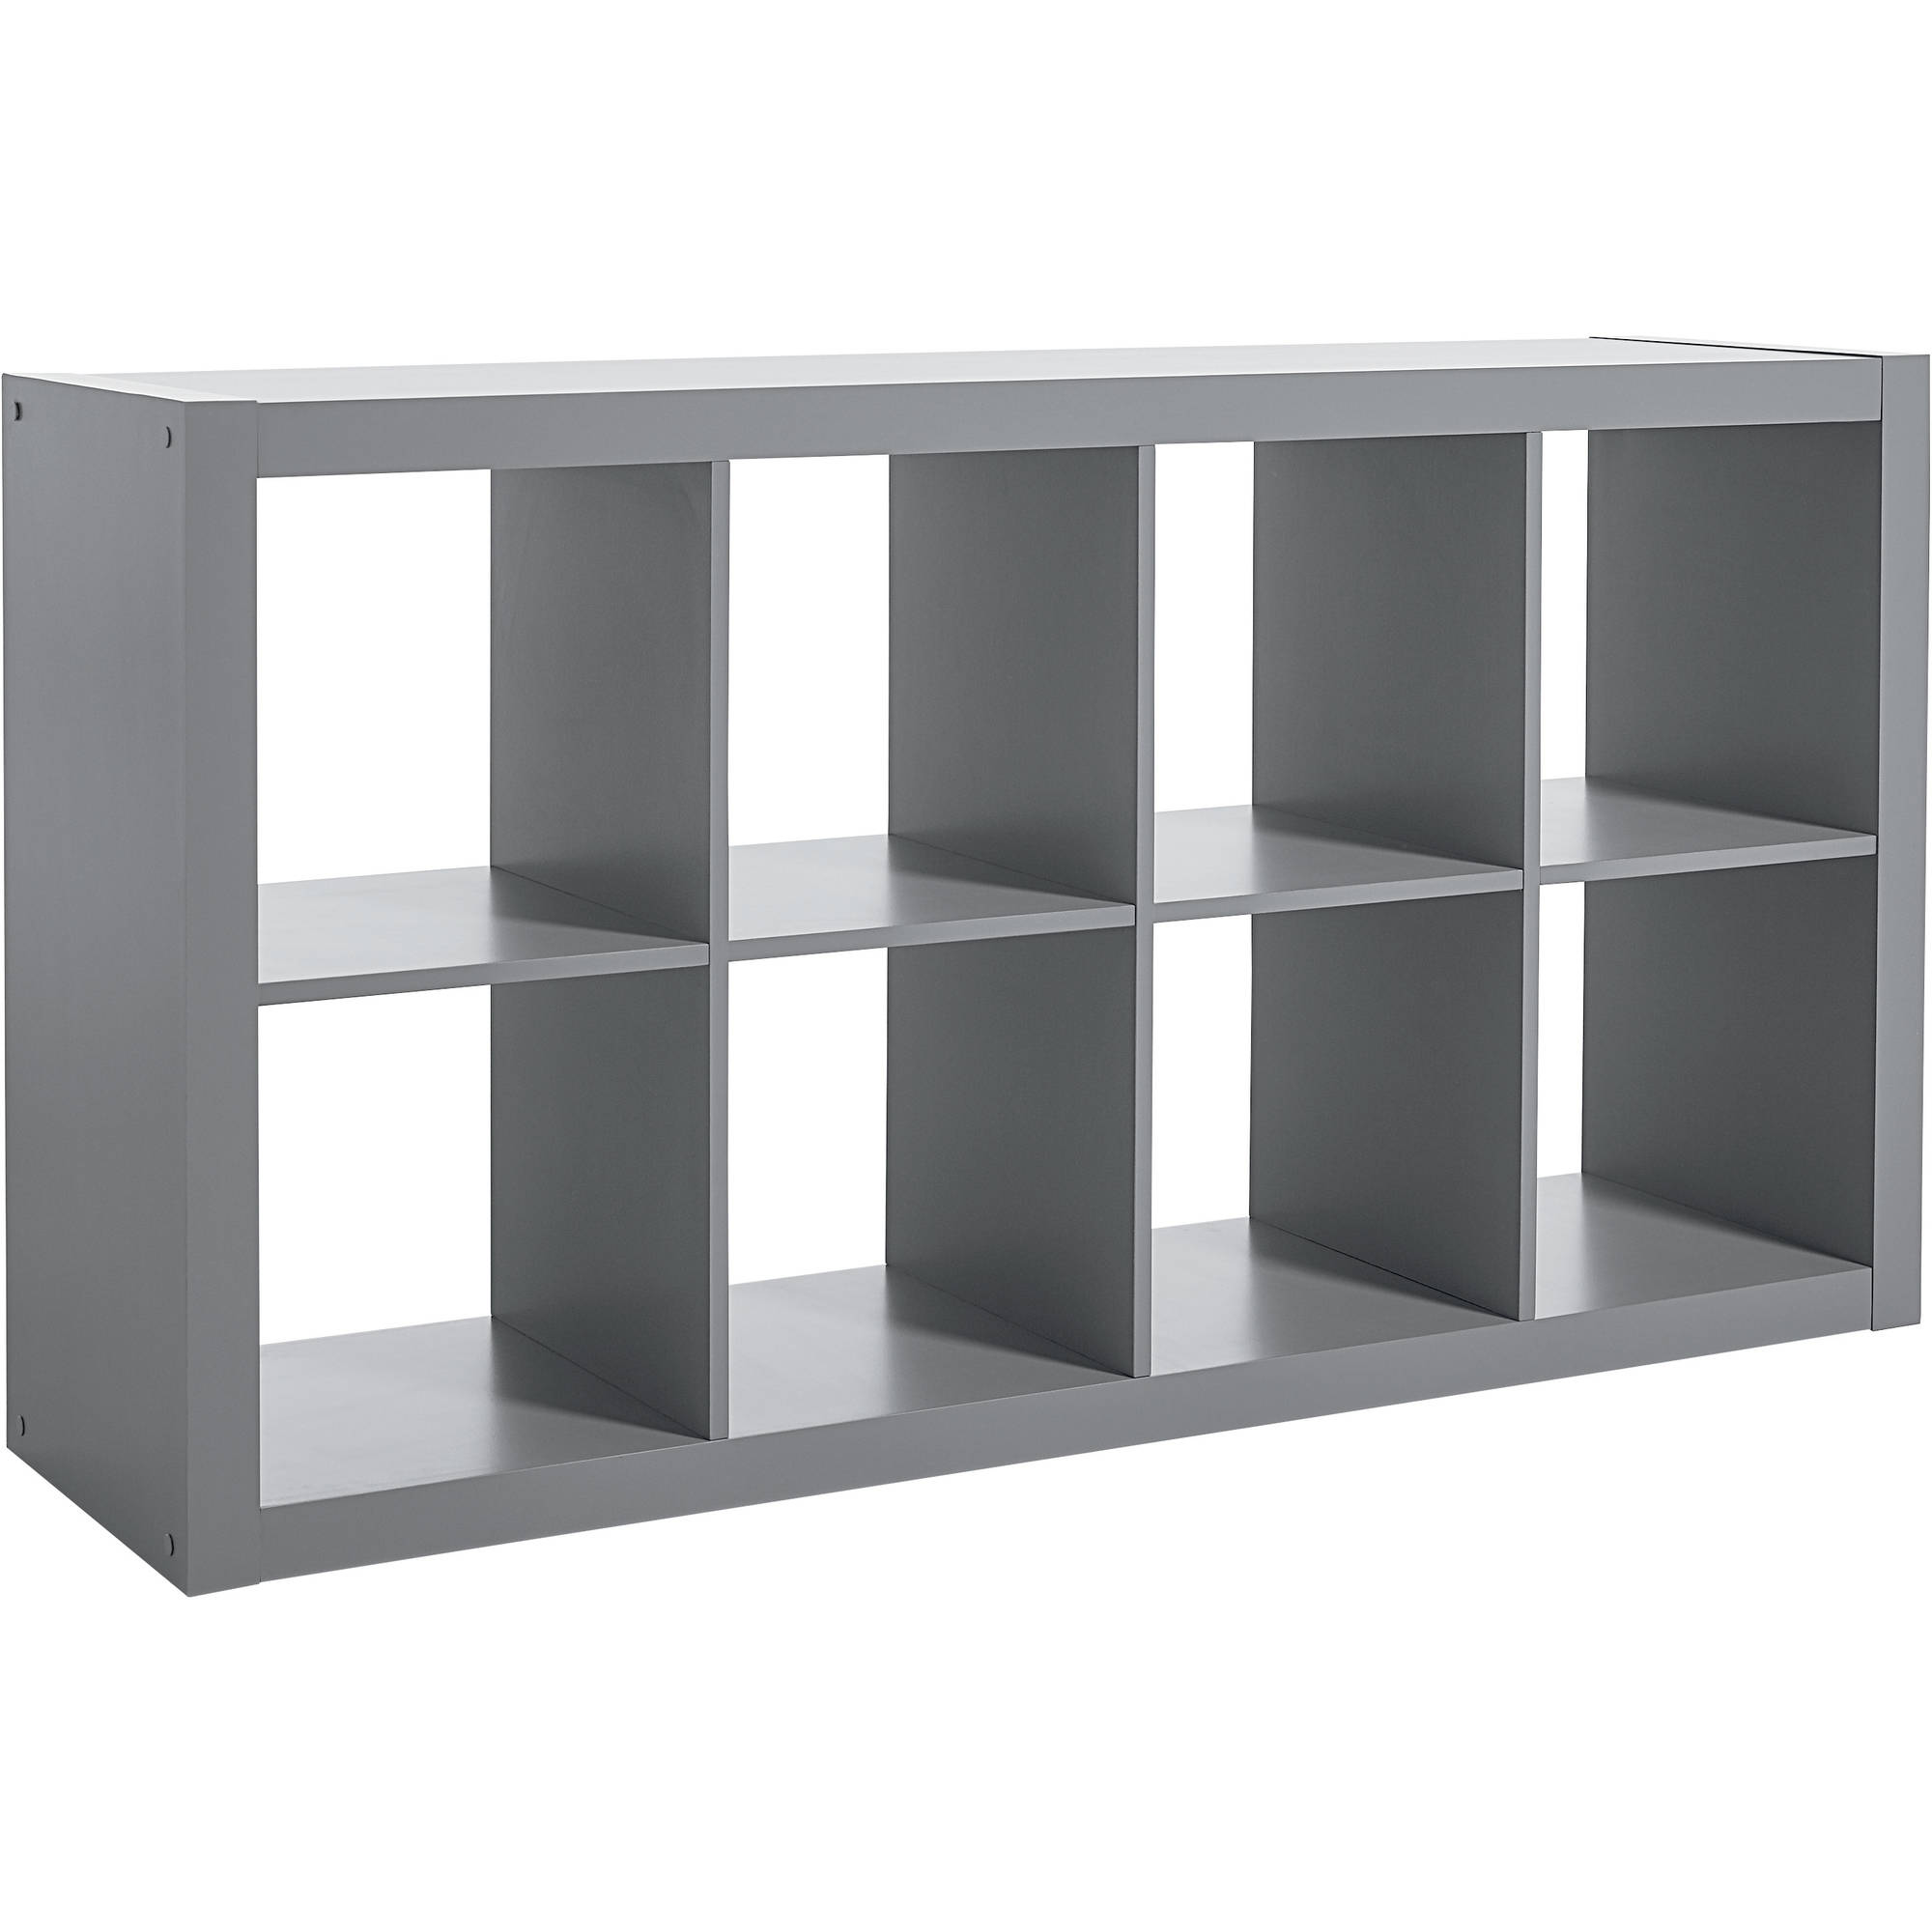 uk cubes shelf cm clic